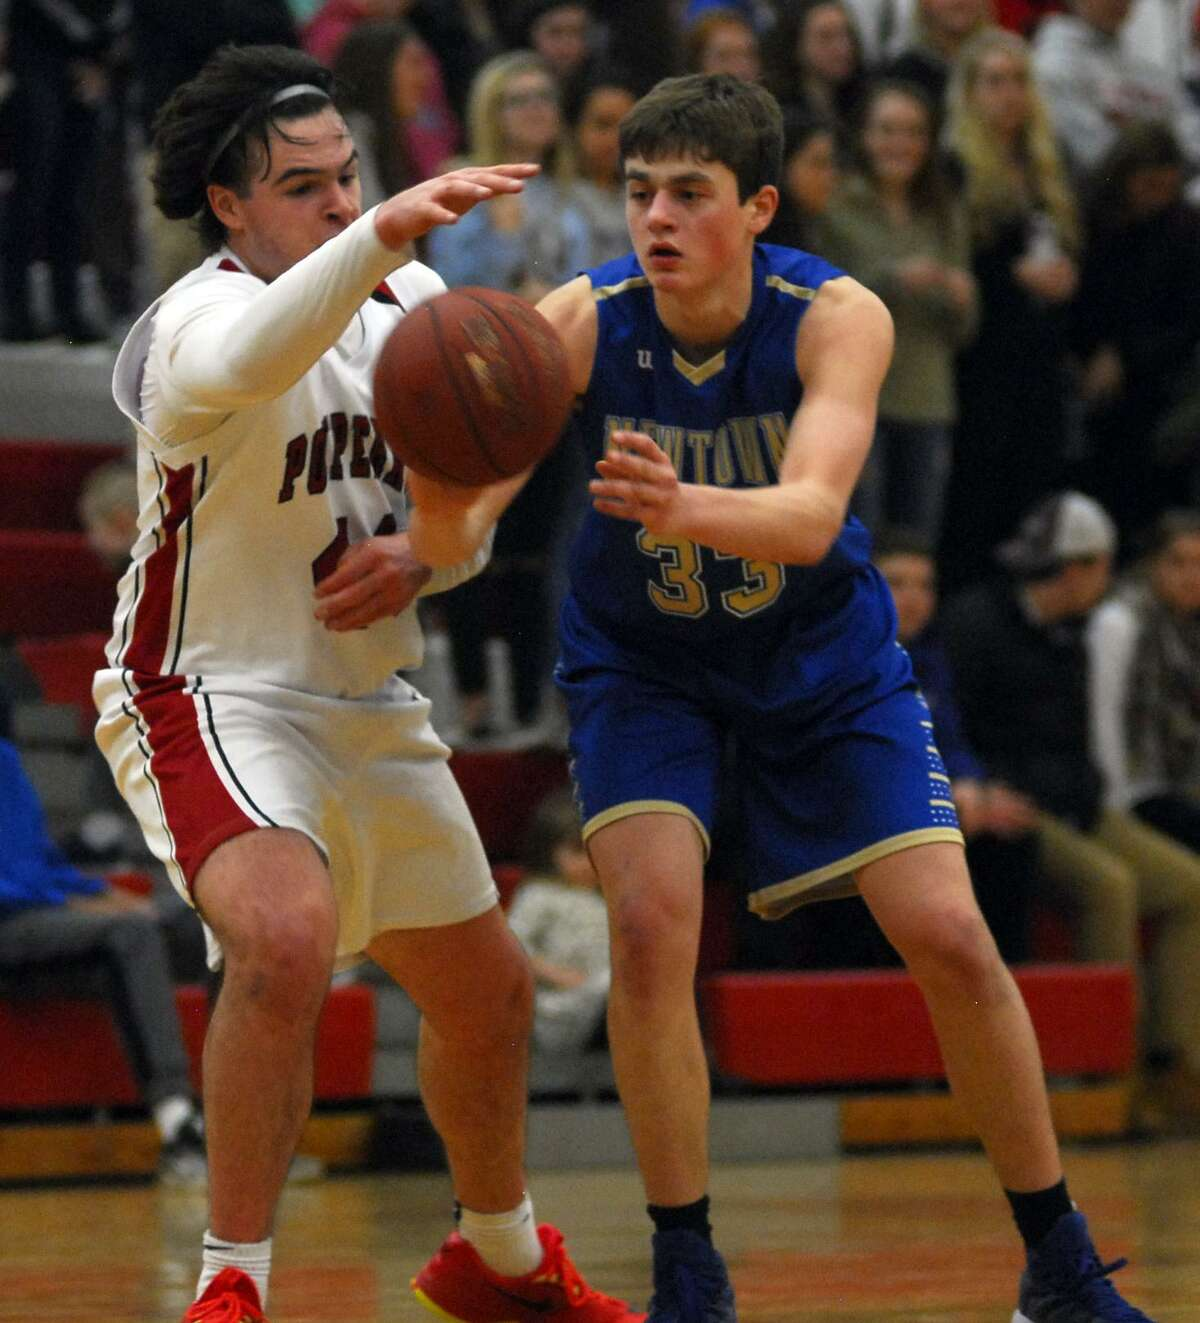 Robert Disibio of Newtown, right and Will McDonald of Pomperaug fight for a loose ball during a game Saturday night.